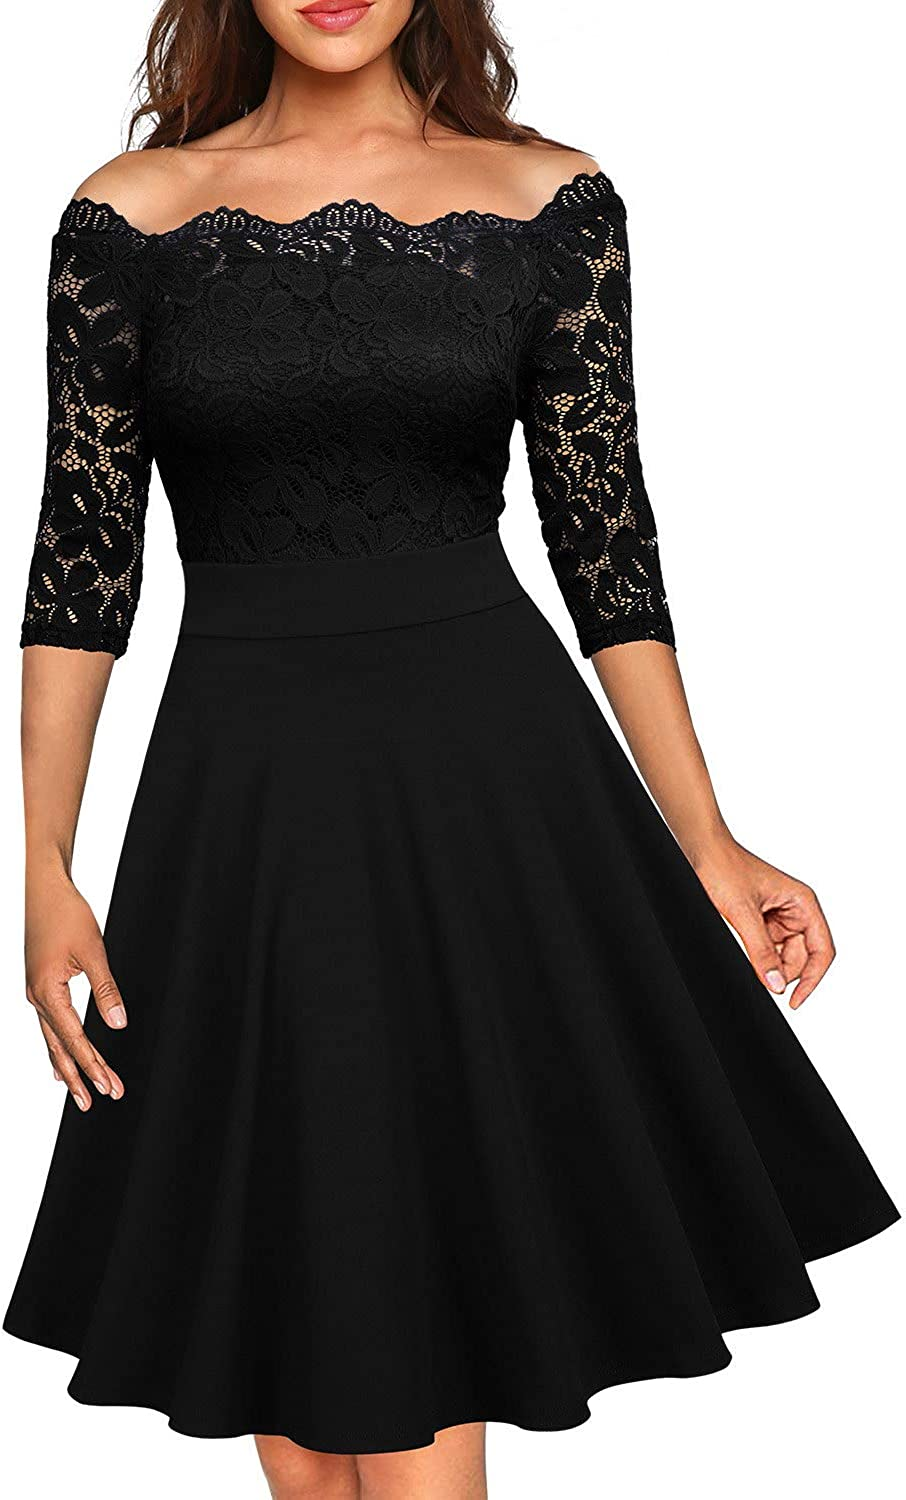 MISSMAY Women's Vintage Floral Lace Half Sleeve Boat Neck Formal Swing Dress